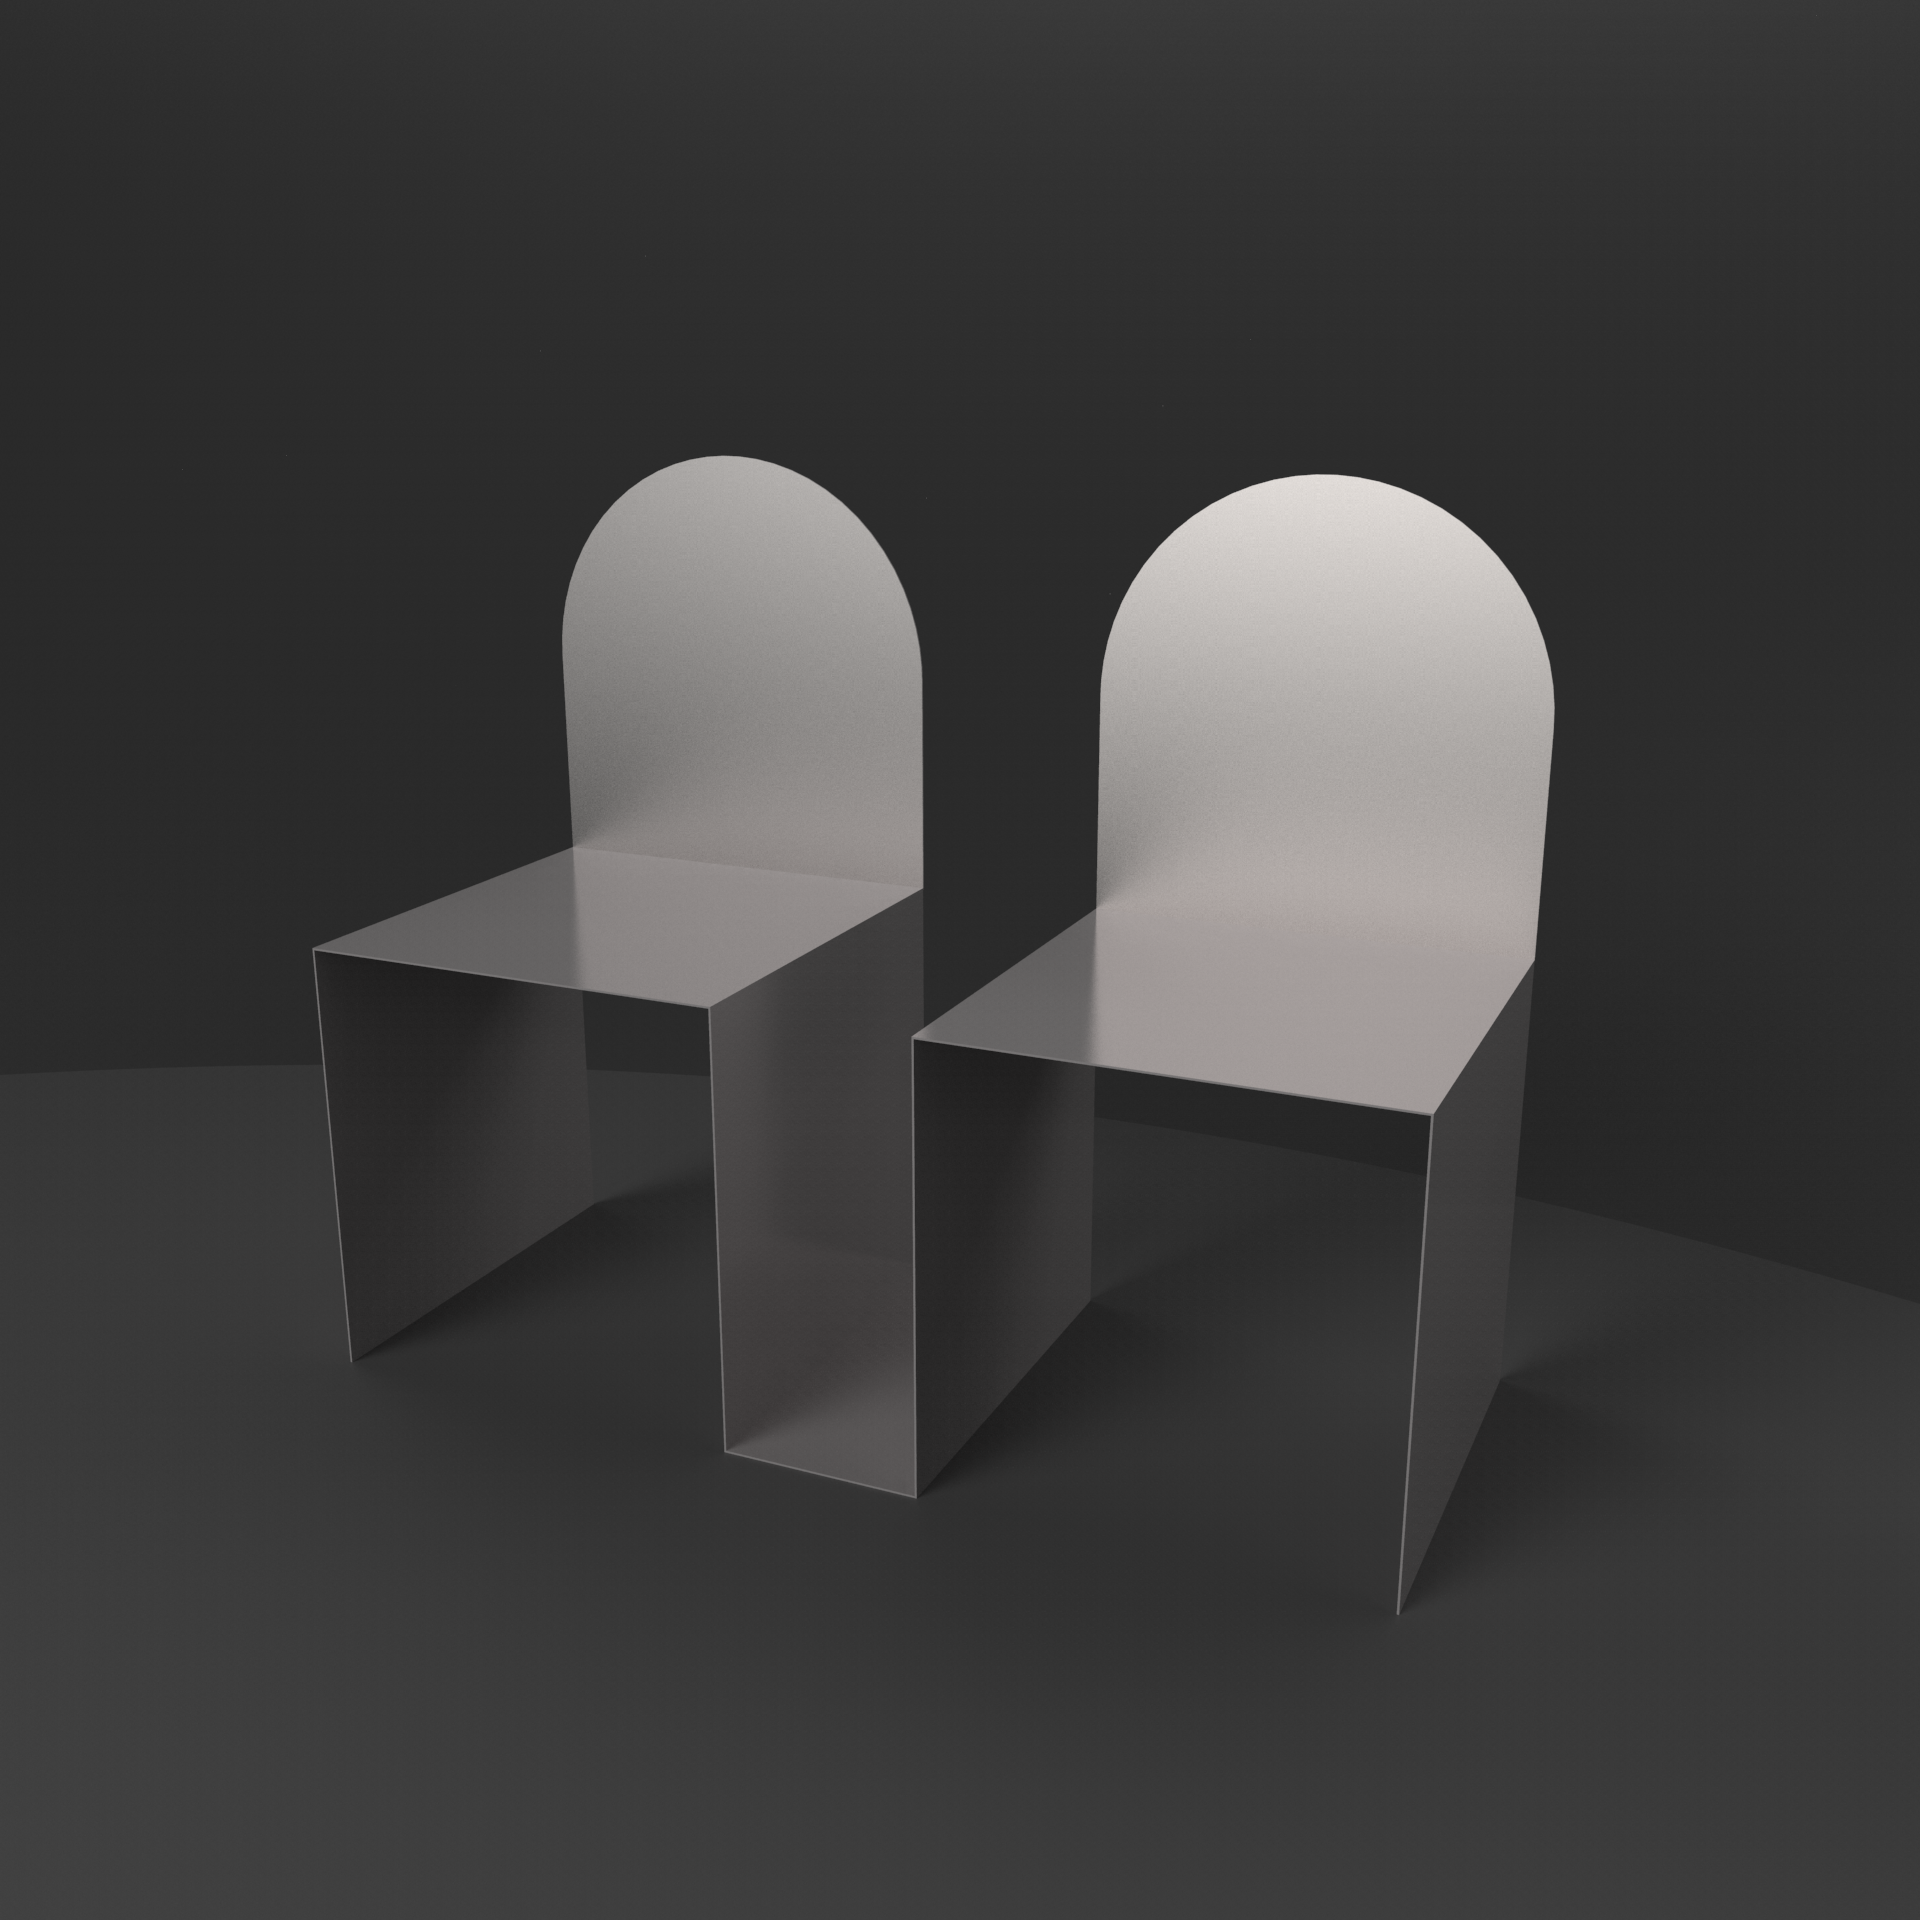 chairs leaning onto each other